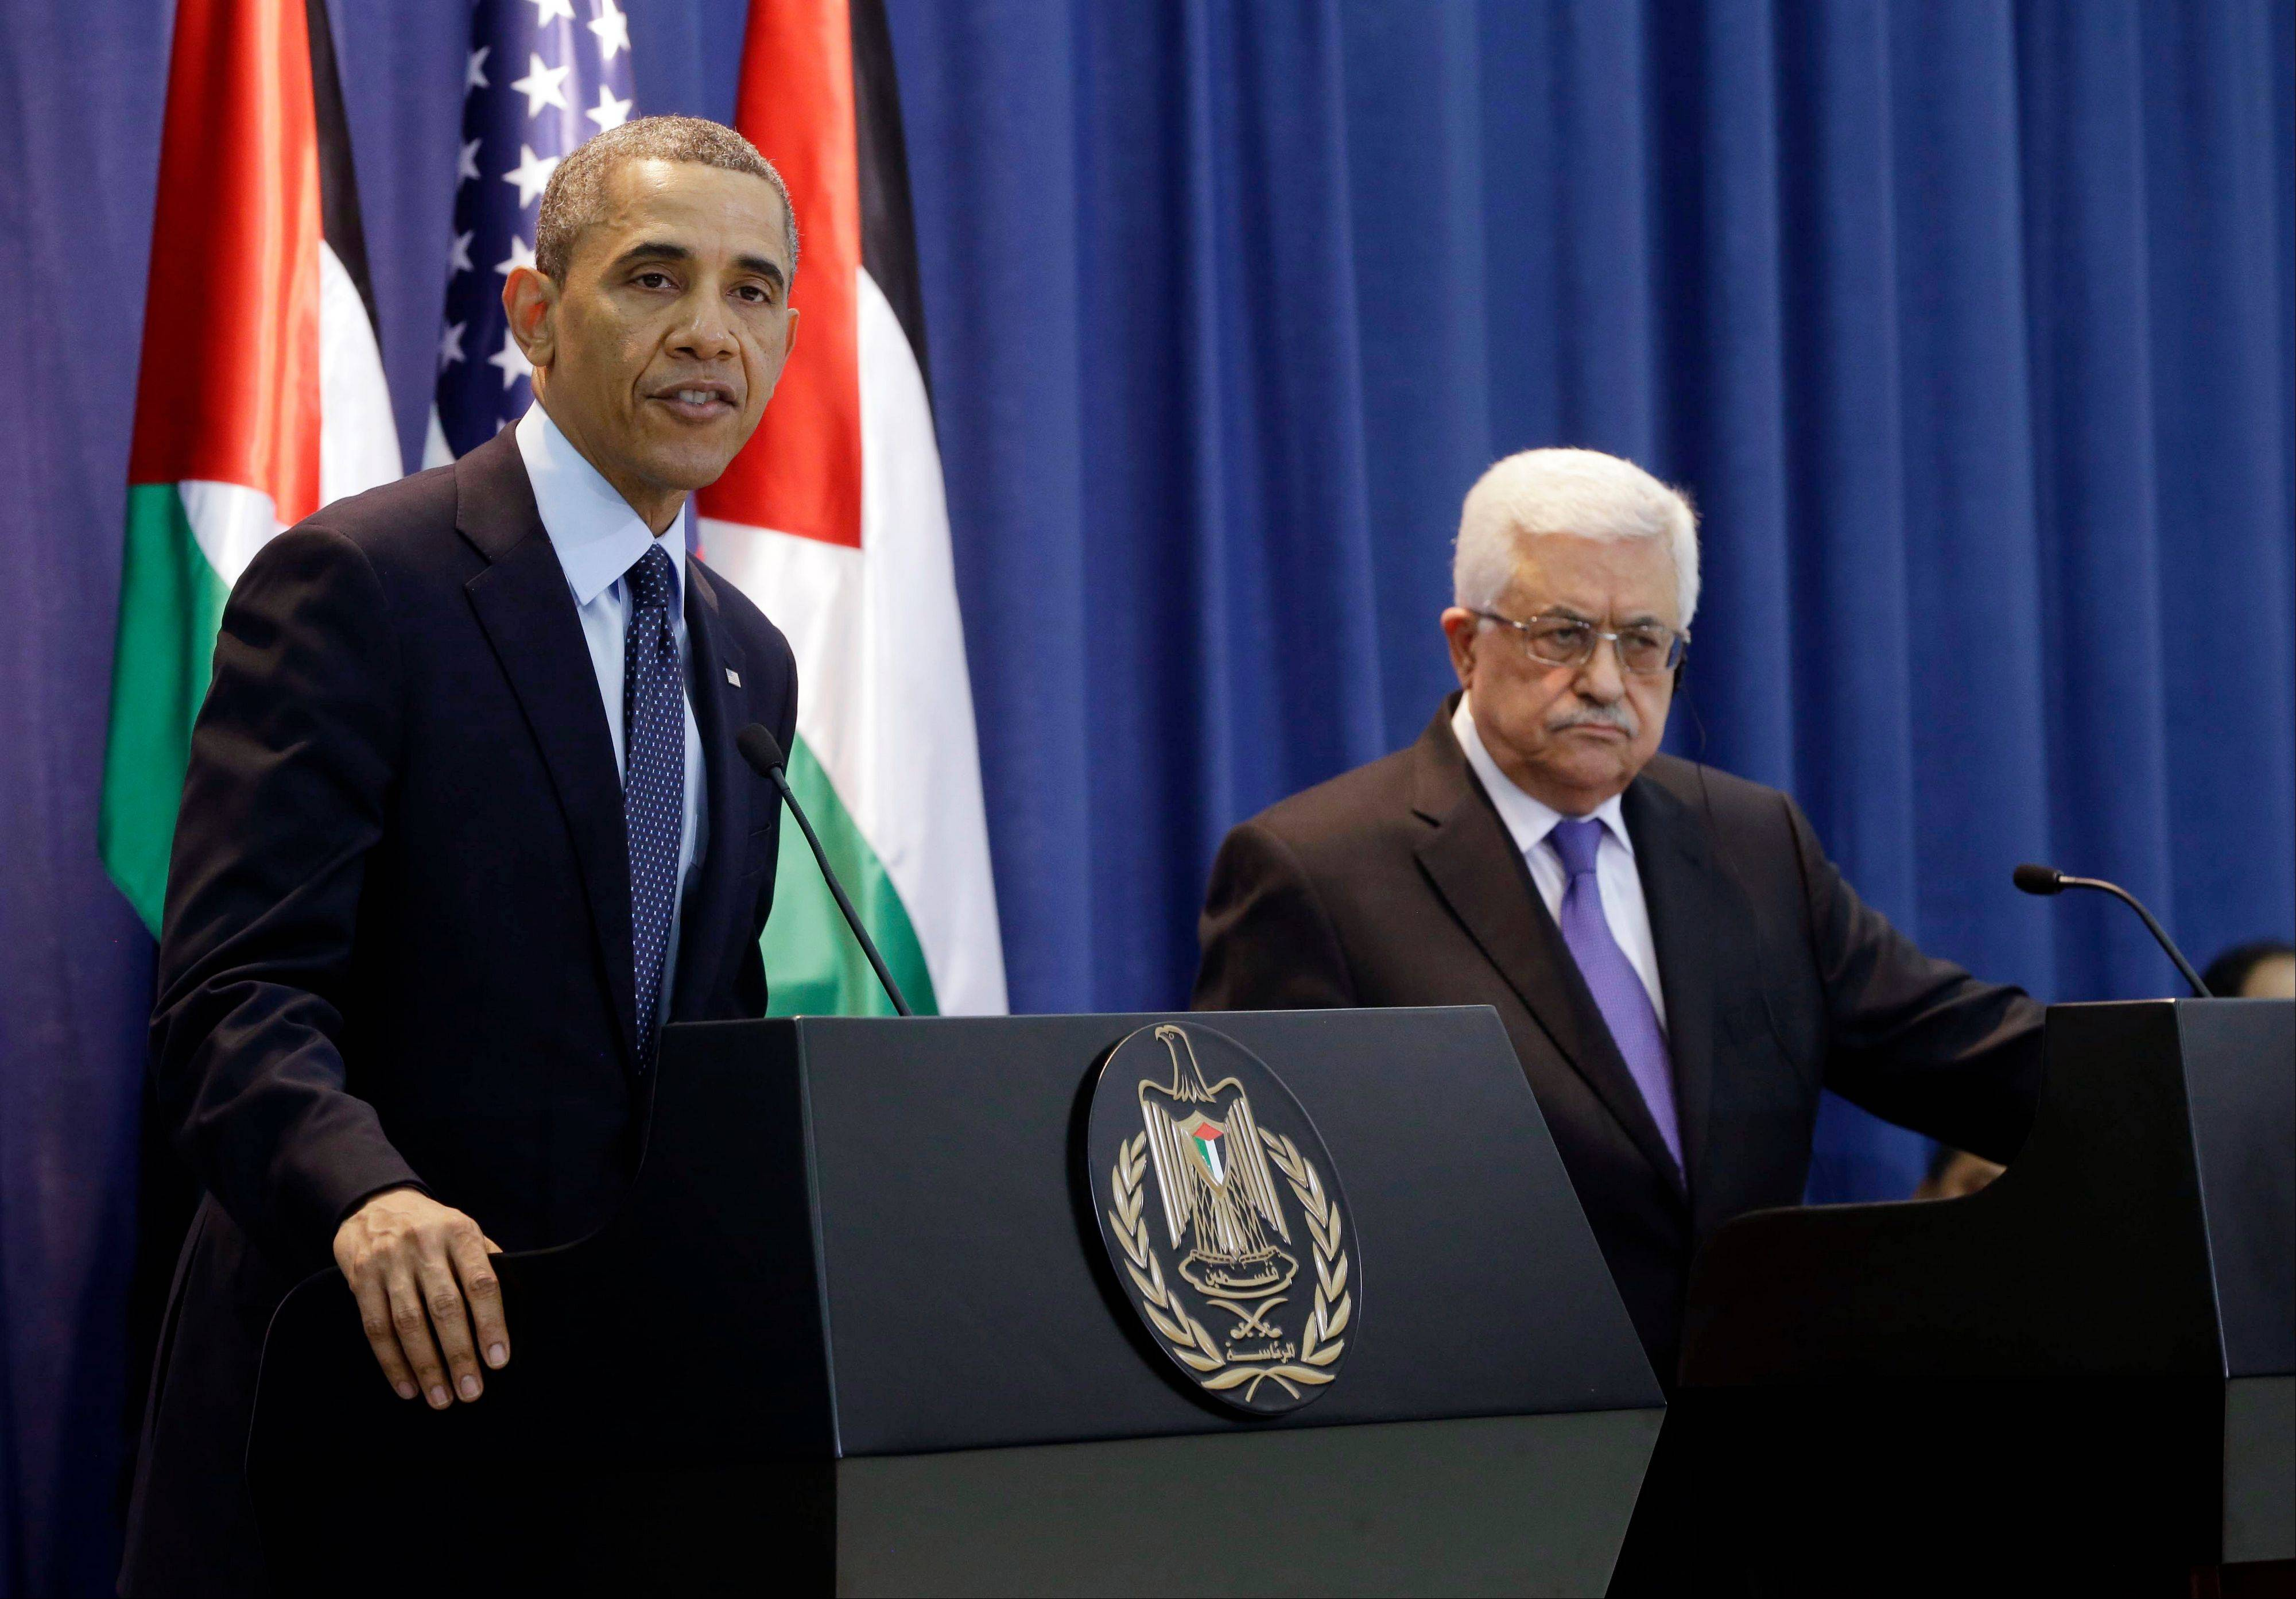 President Barack Obama and Palestinian President Mahmoud Abbas during their joint news conference at the Muqata President Compound in the West Bank city of Ramallah, Thursday, March 21, 2013.